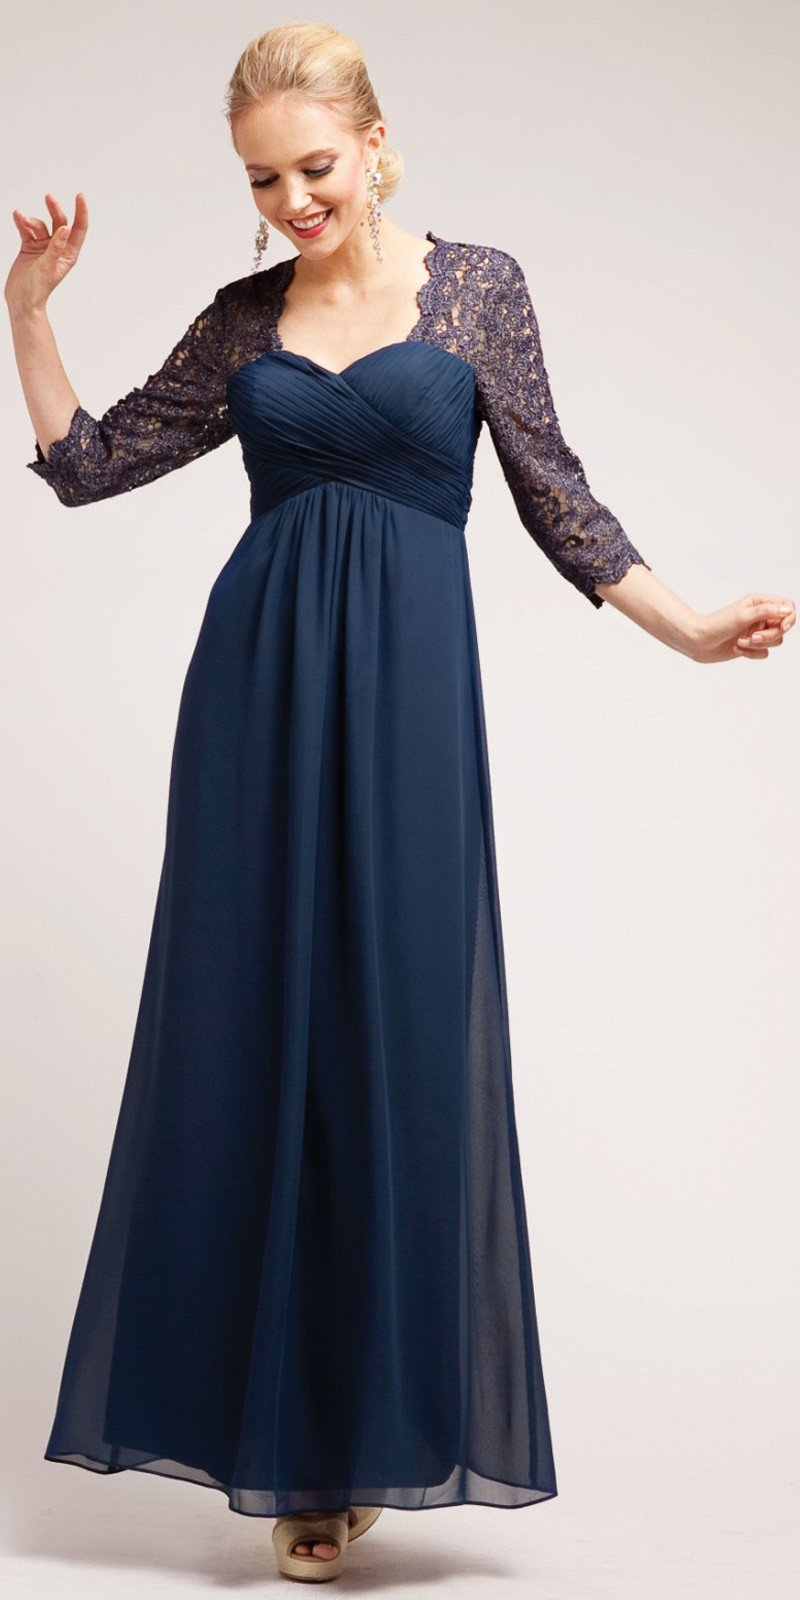 CLEARANCE - Lace Mid Length Sleeve Plus Size Navy Mother Bride Dress (Size  4XL)